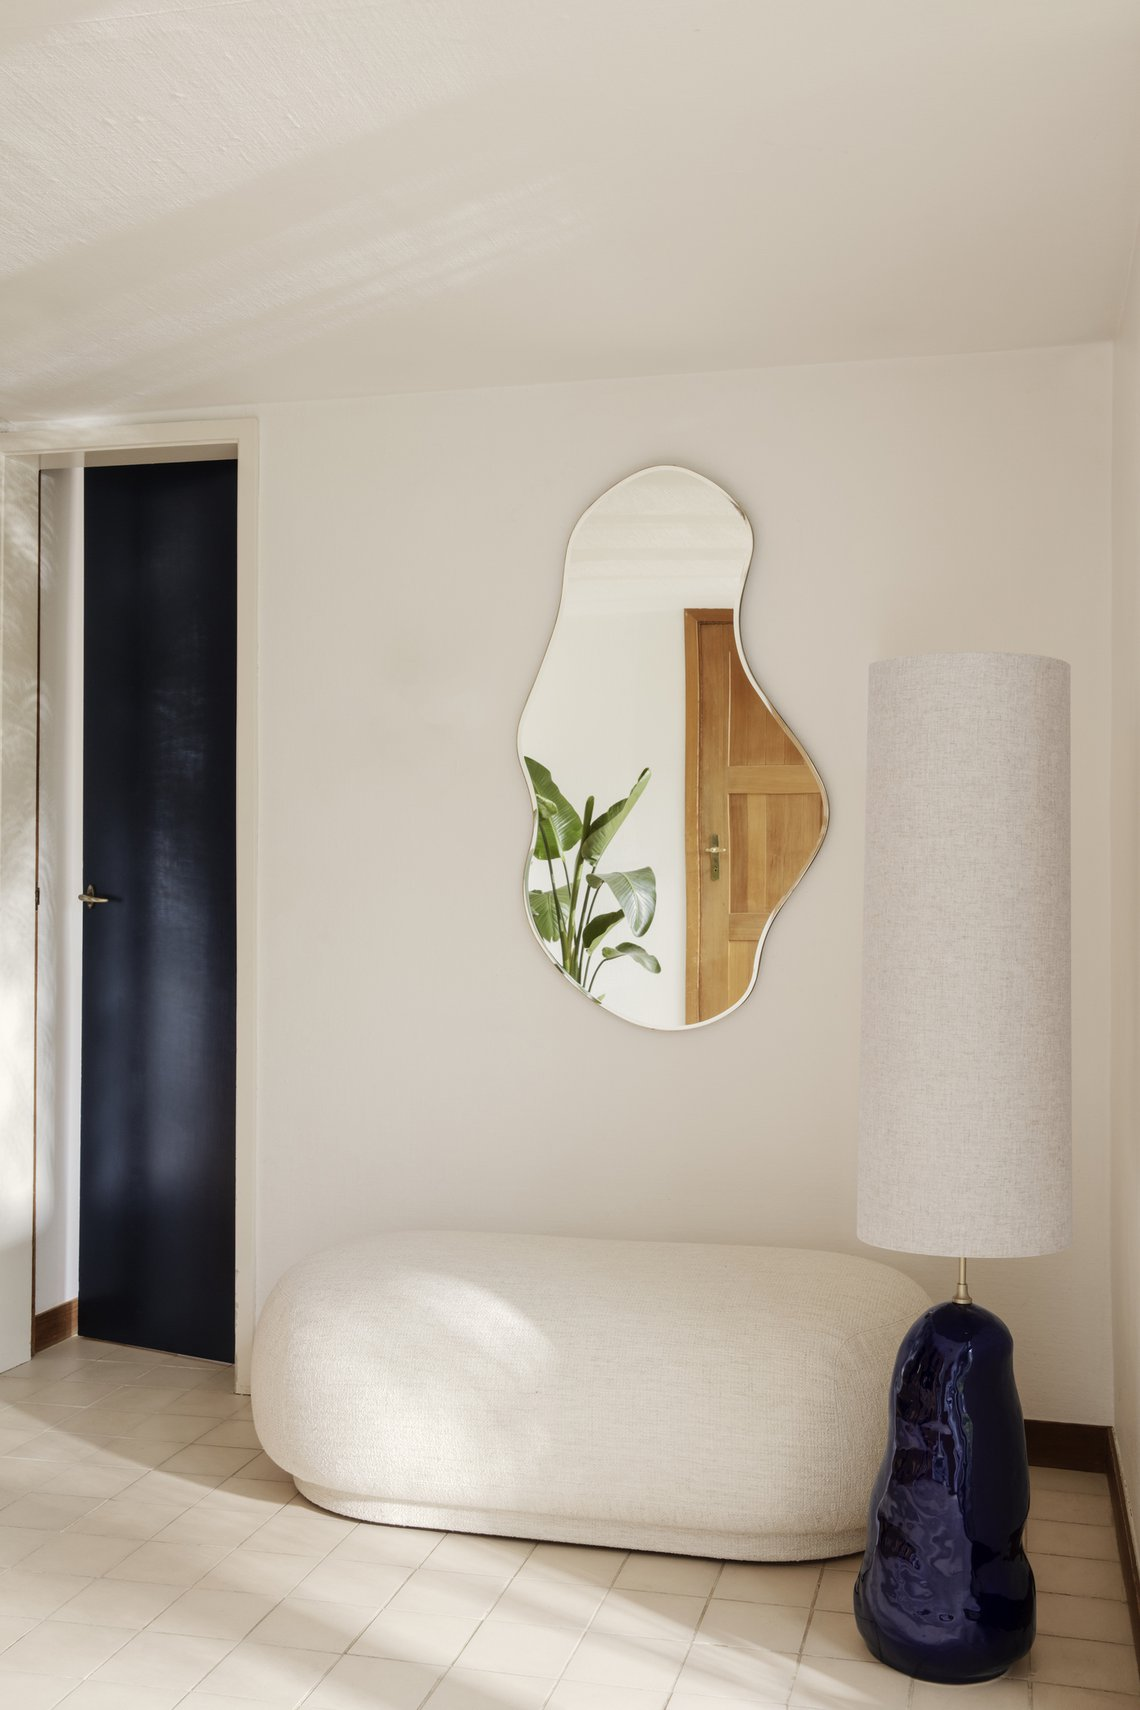 Pond mirror Ferm living 2